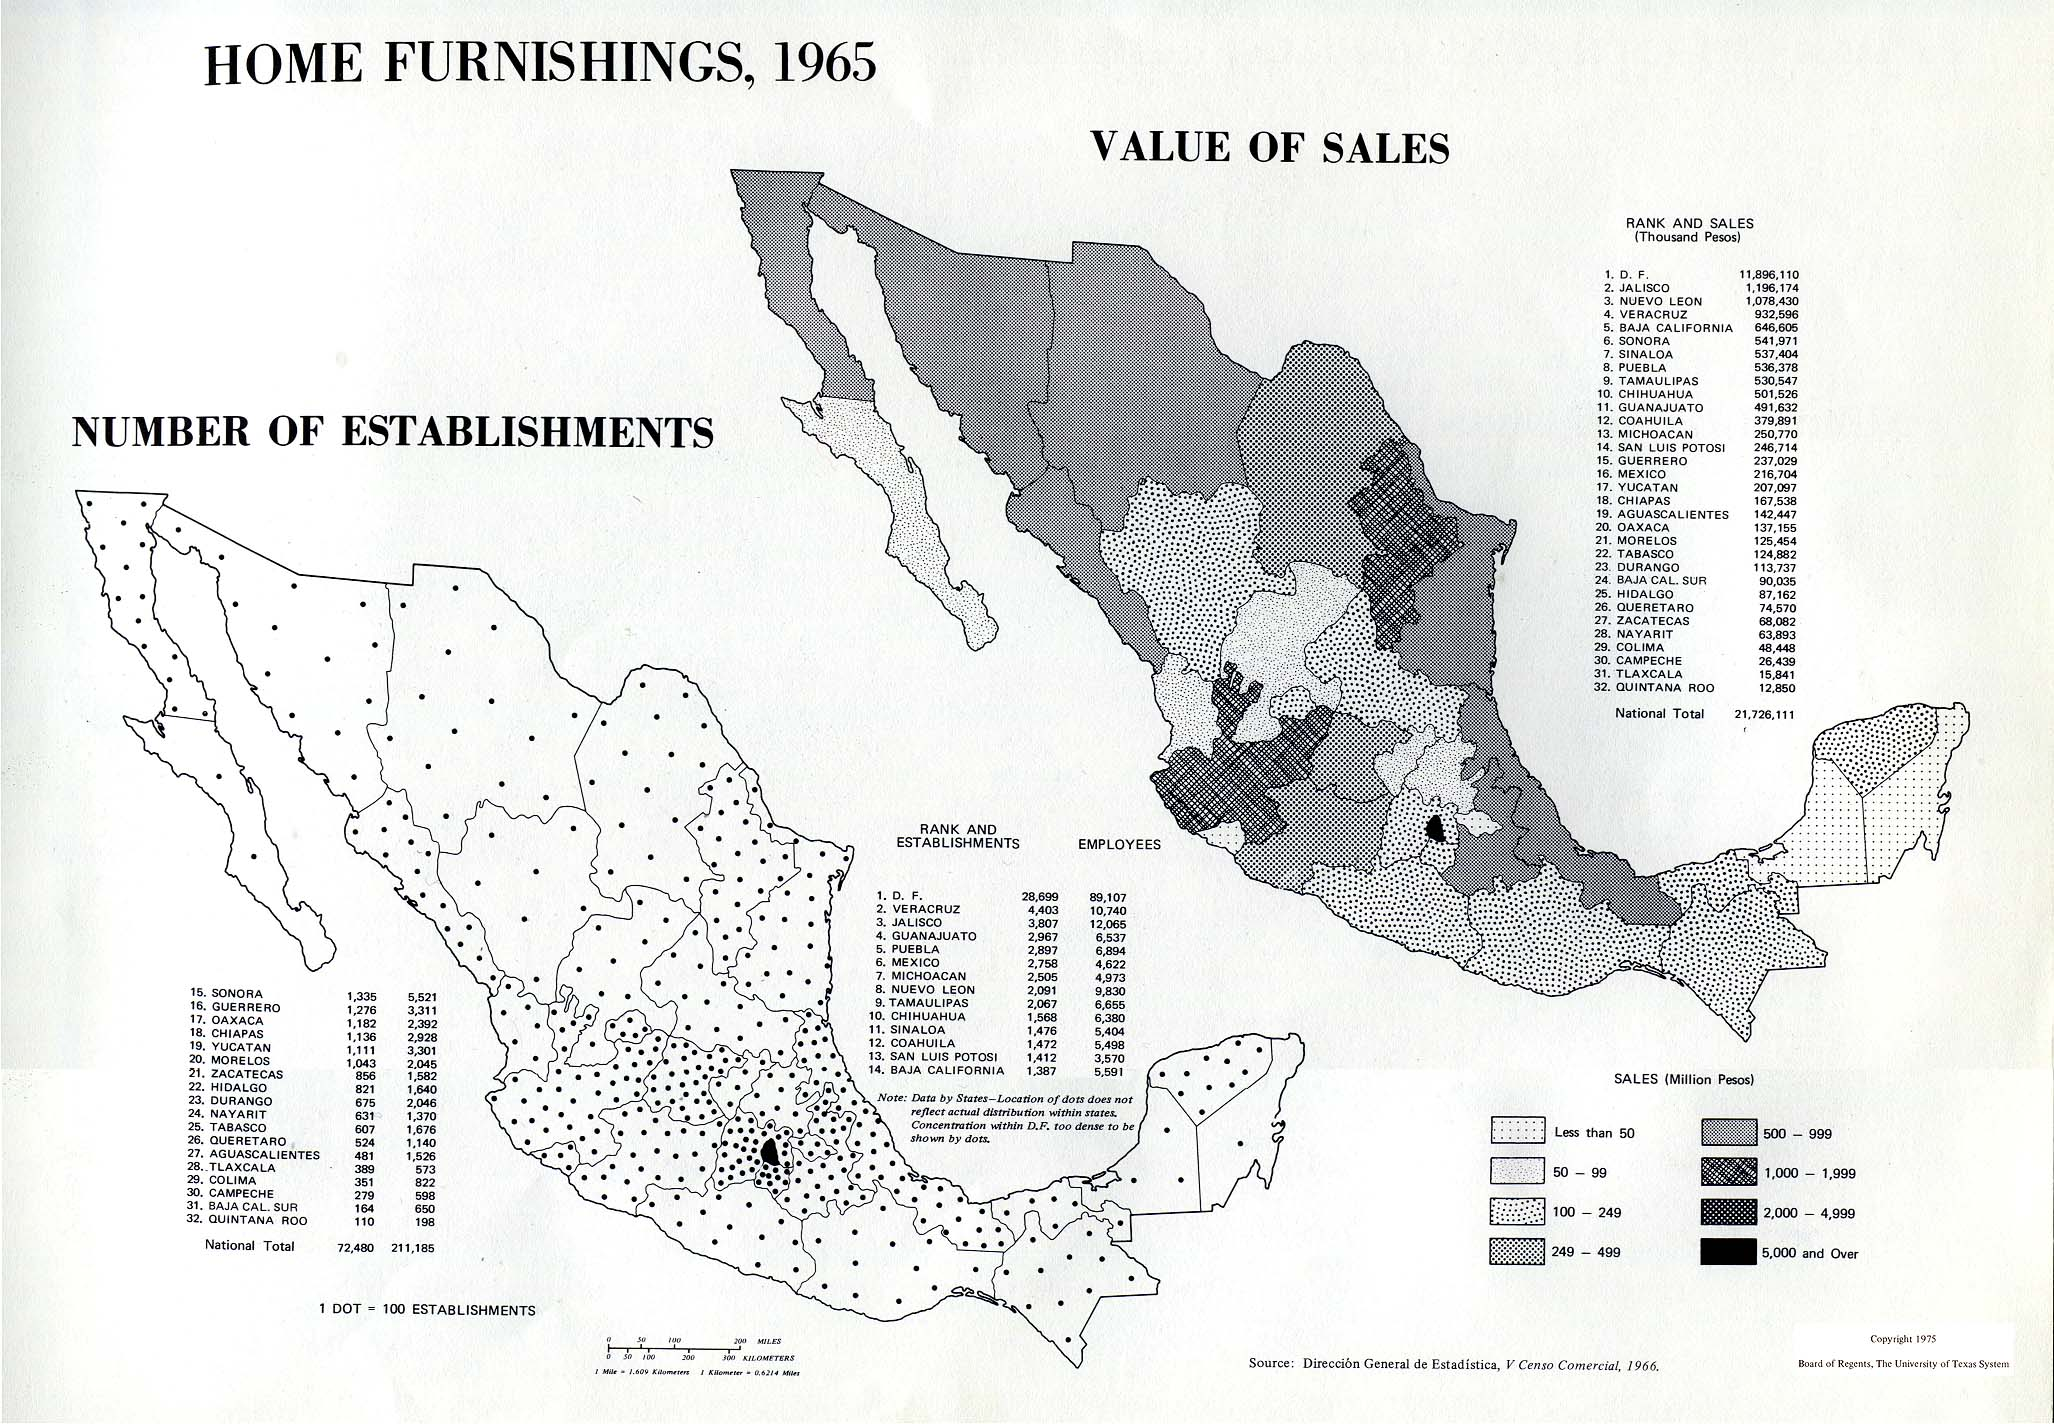 Home Furnishings in Mexico 1965